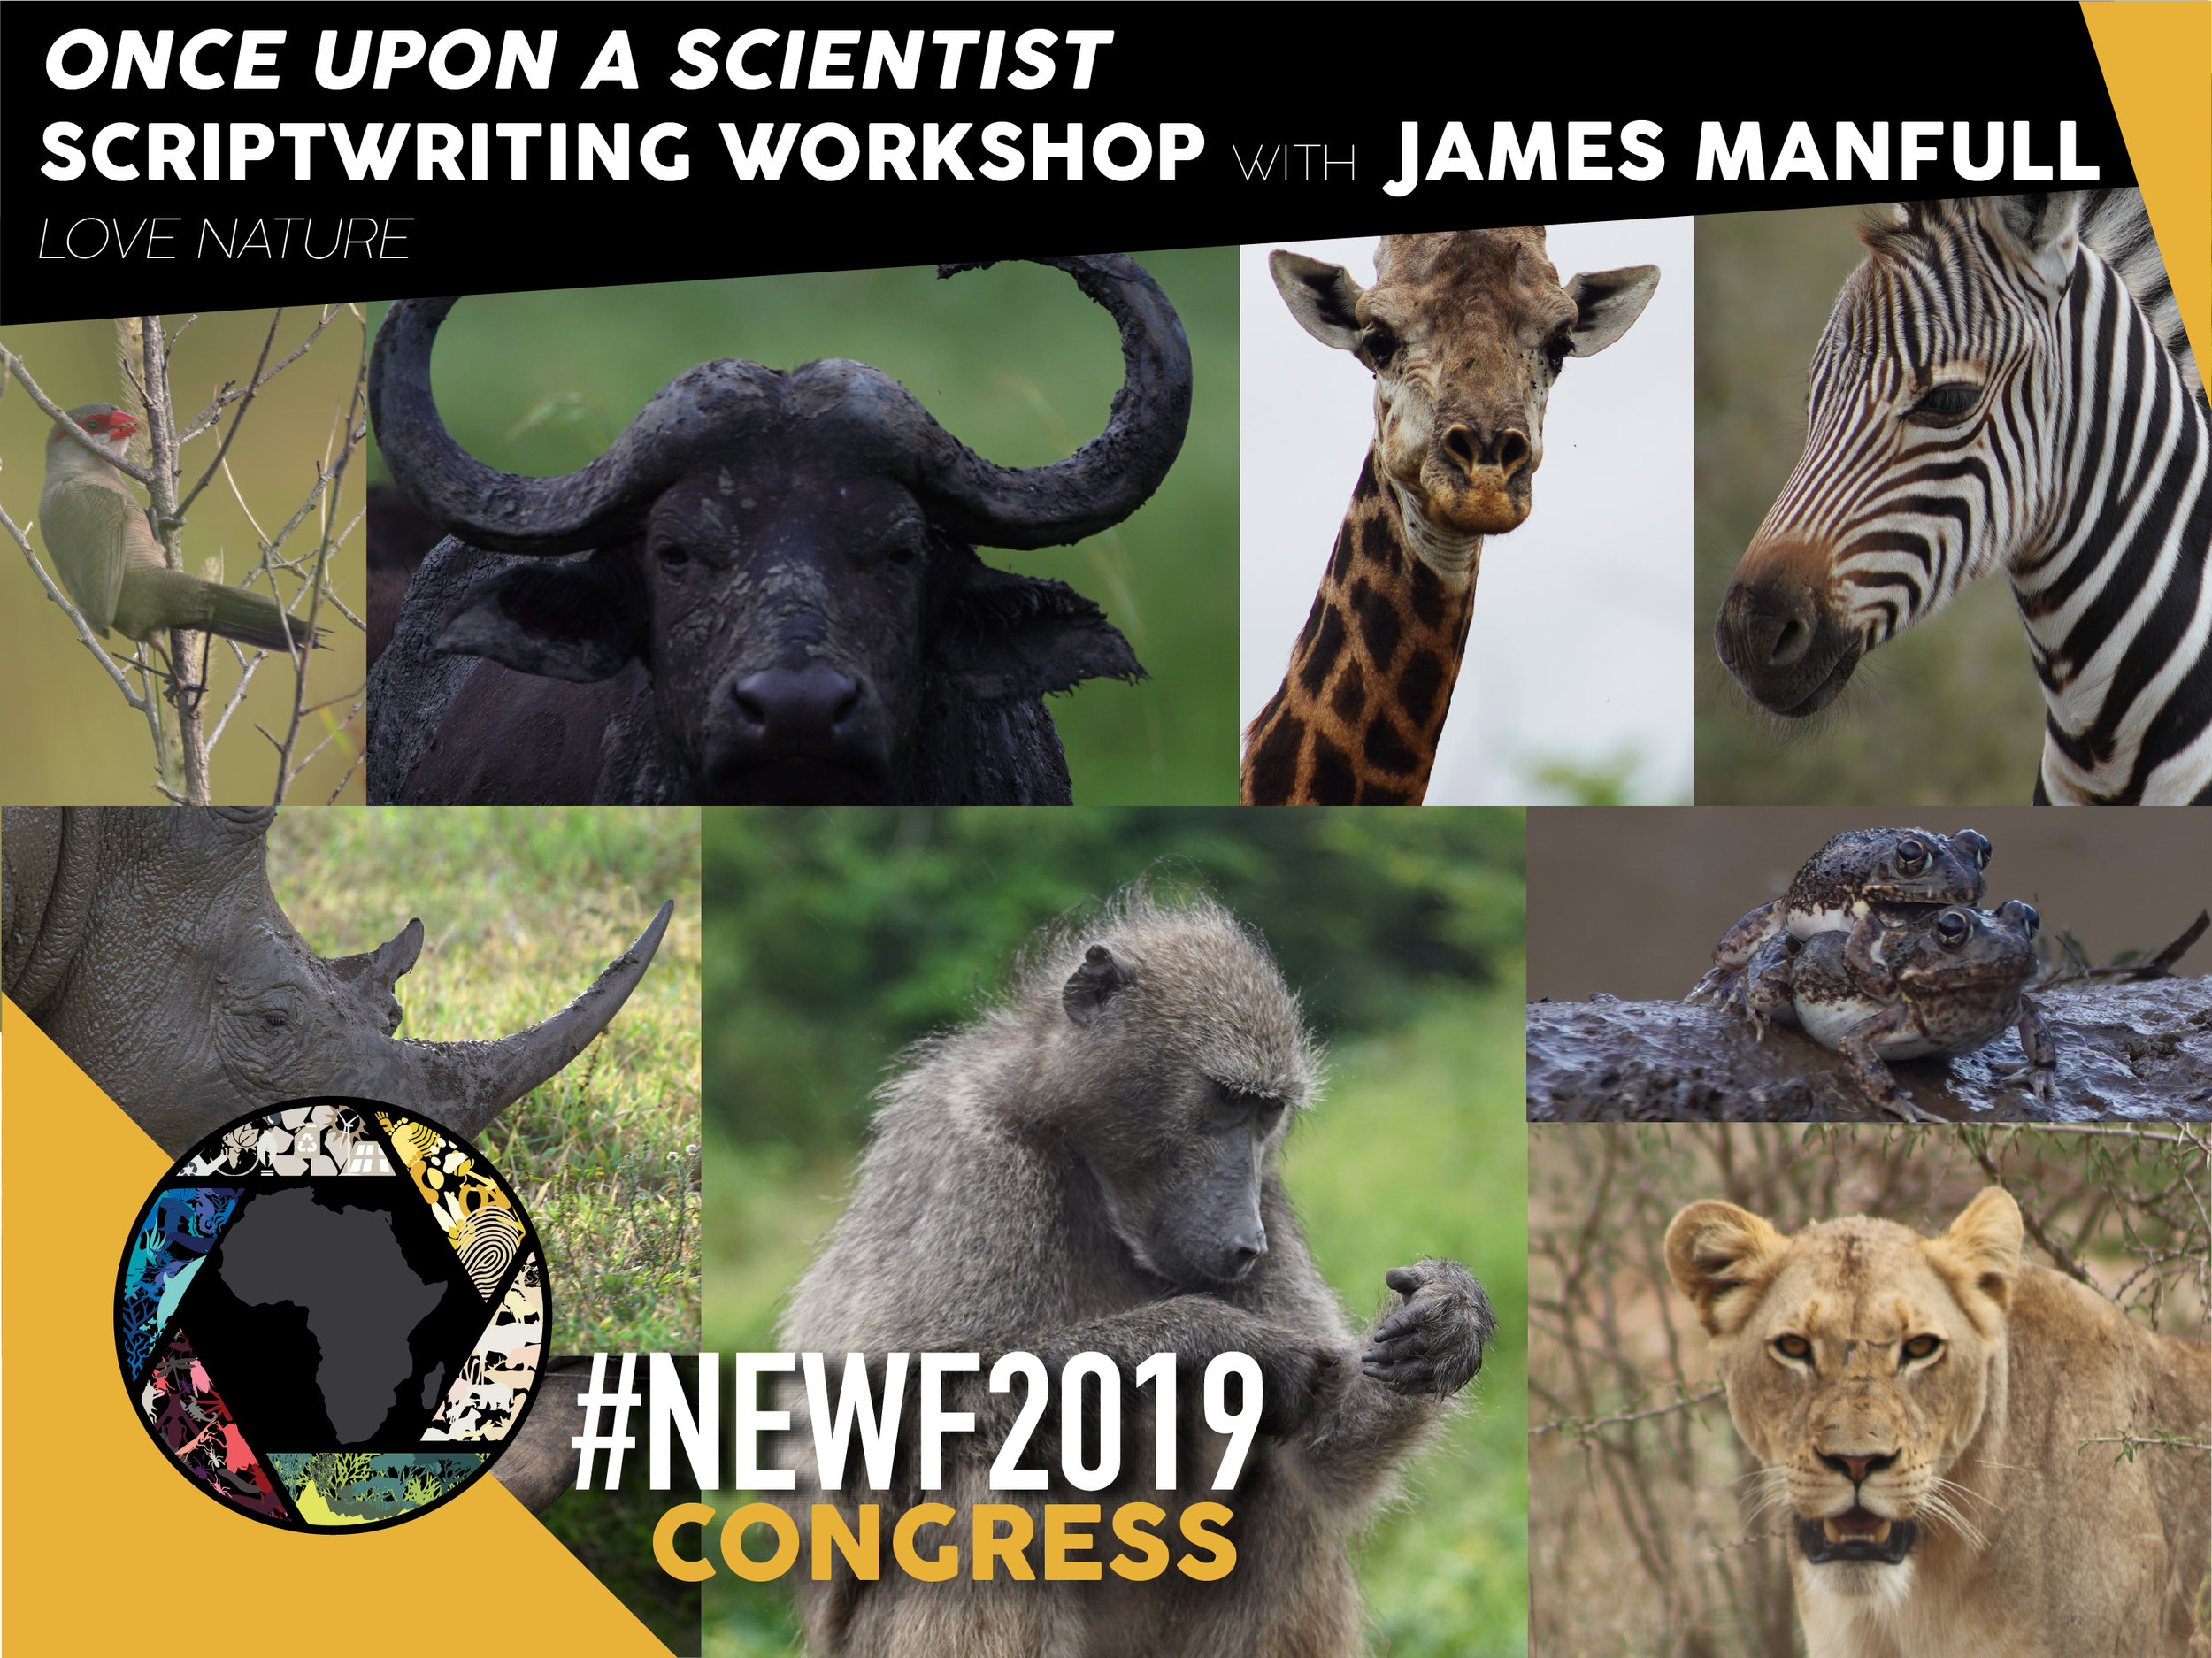 Are you scientist or conservationist with a story to tell?   Have you been too scared or nervous to enter the N.E.W Pitch or approach a filmmaker? Perhaps you don't believe that your conservation science story is worth telling. This workshop will give you the tools to amplify your messaging through powerful science communication. James Manfull, Executive Producer at Love Nature leads a scriptwriting and science communication workshop aimed at scientists and conservationists on how to hone their vision and craft a narrative.   ONLY 10 SPACES AVAILABLE!    CLICK HERE TO APPLY!